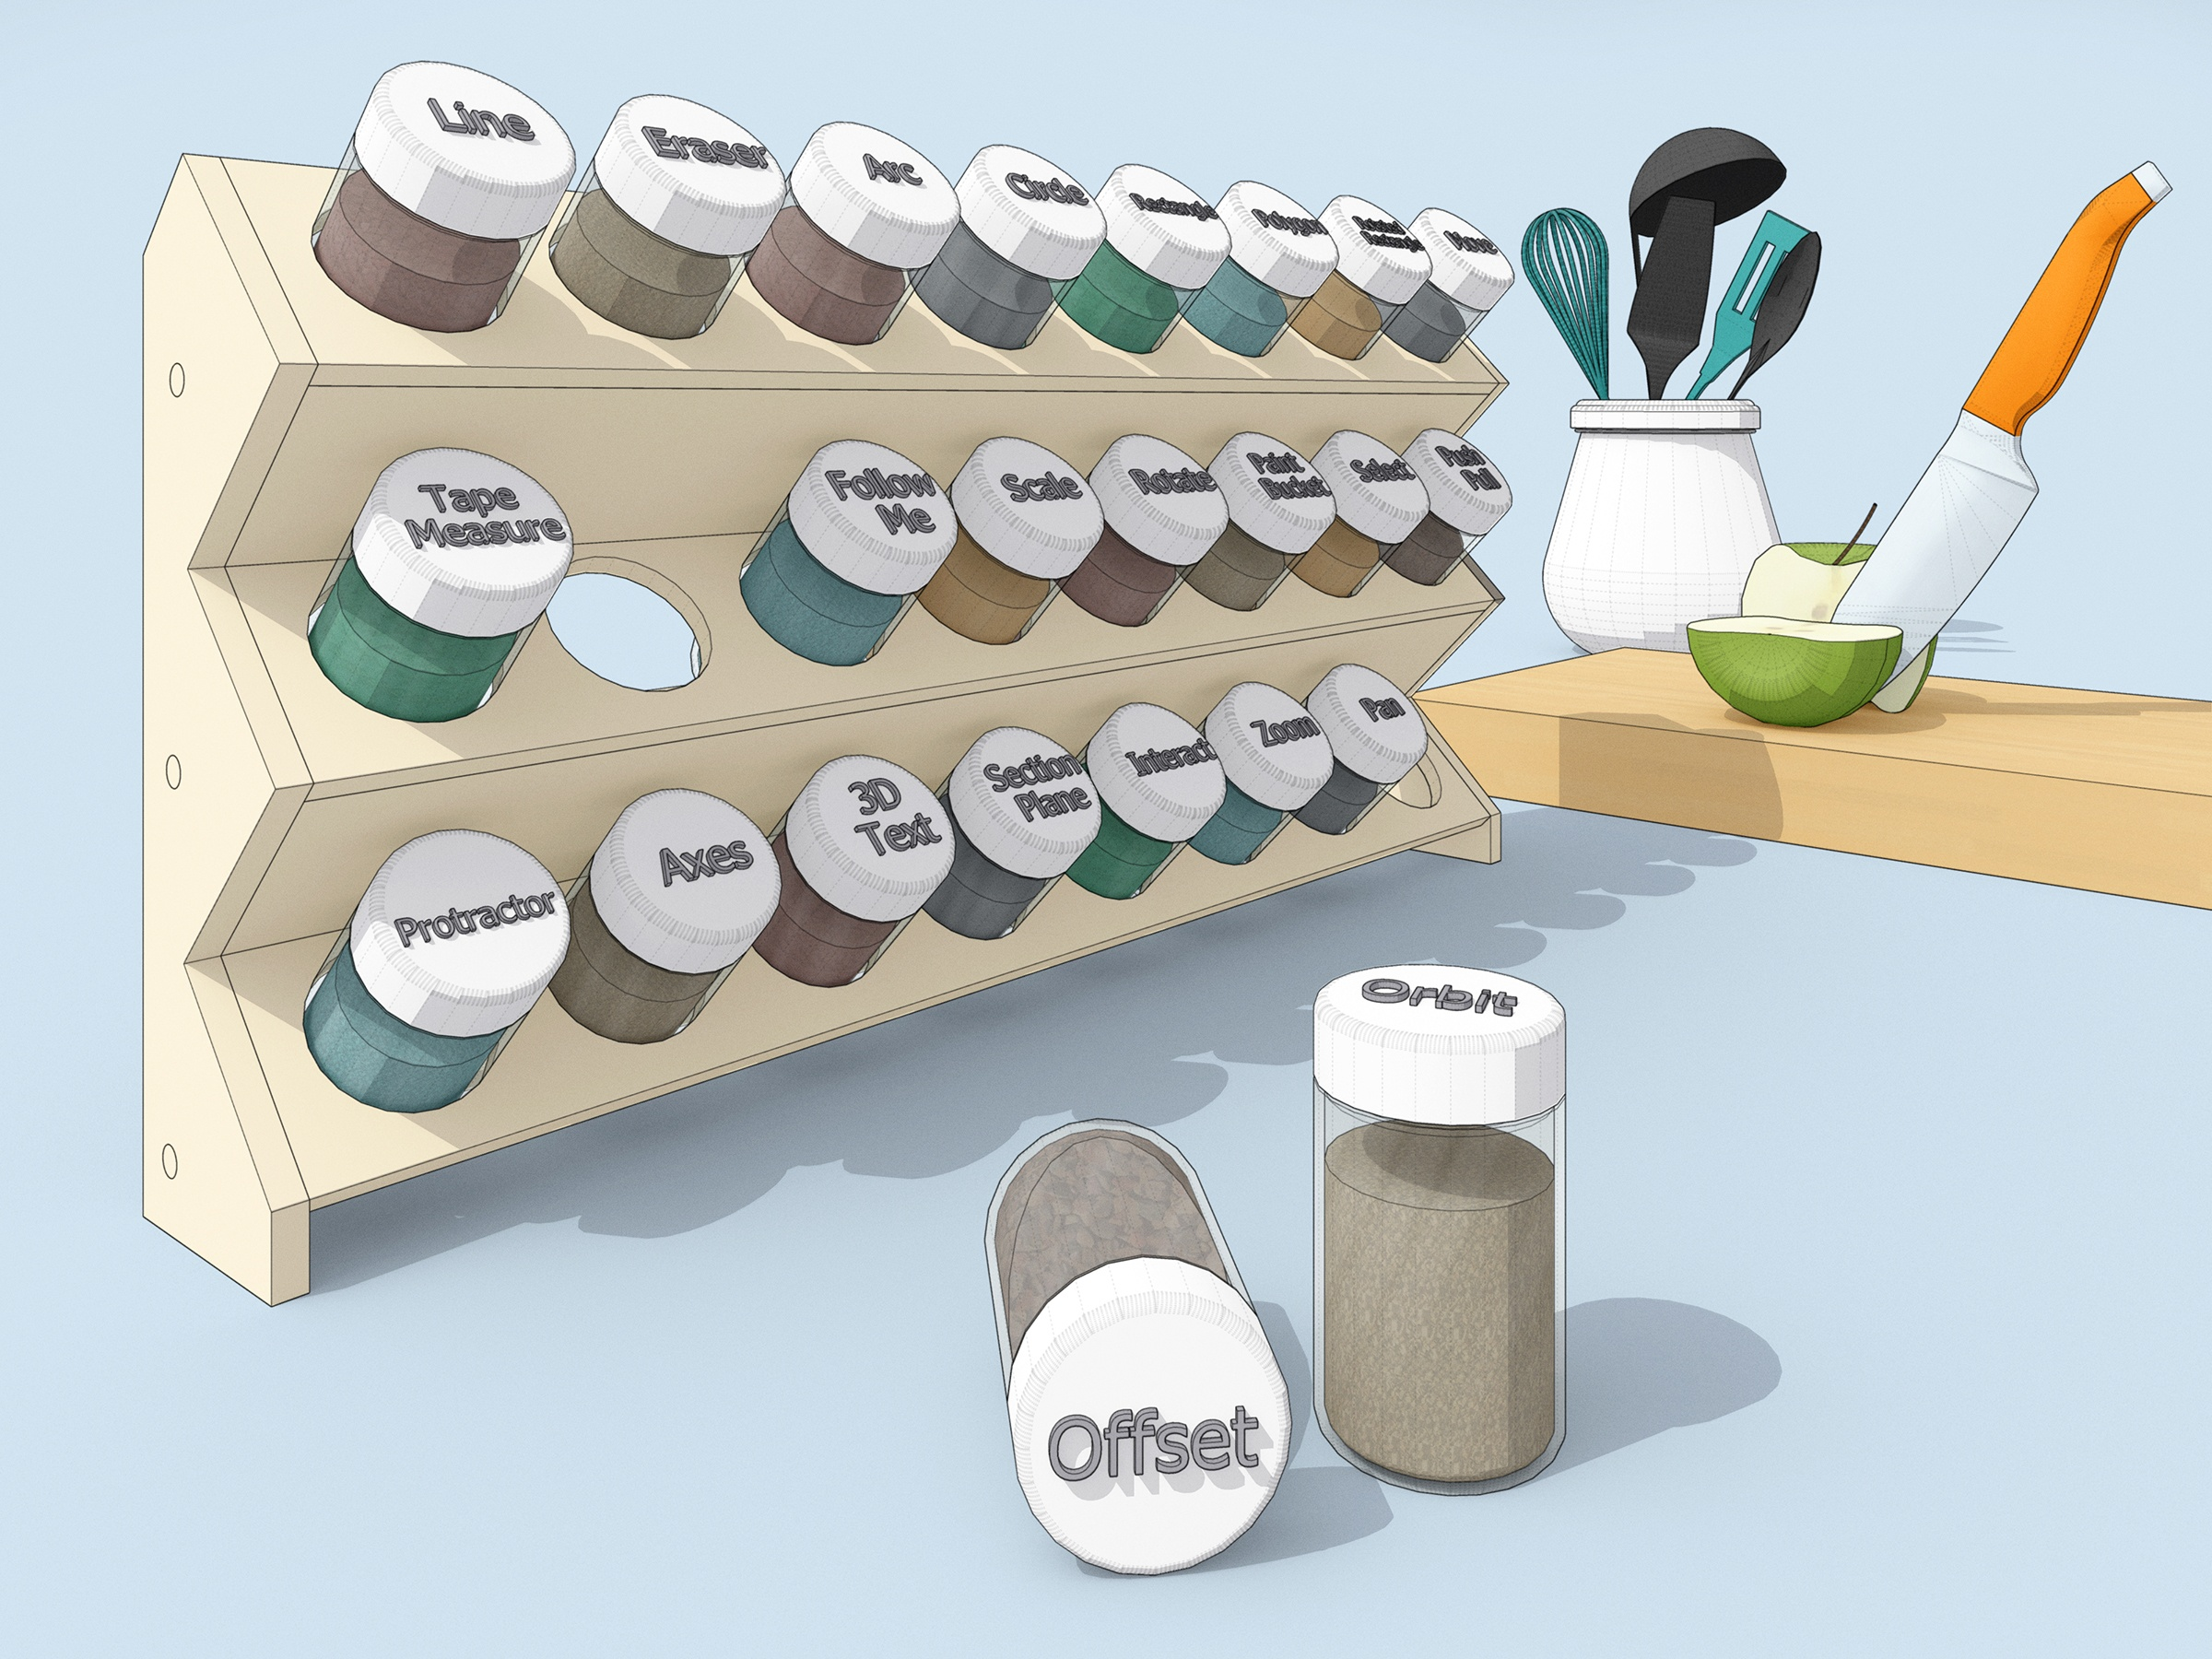 SketchUp Spice Rack of Tools